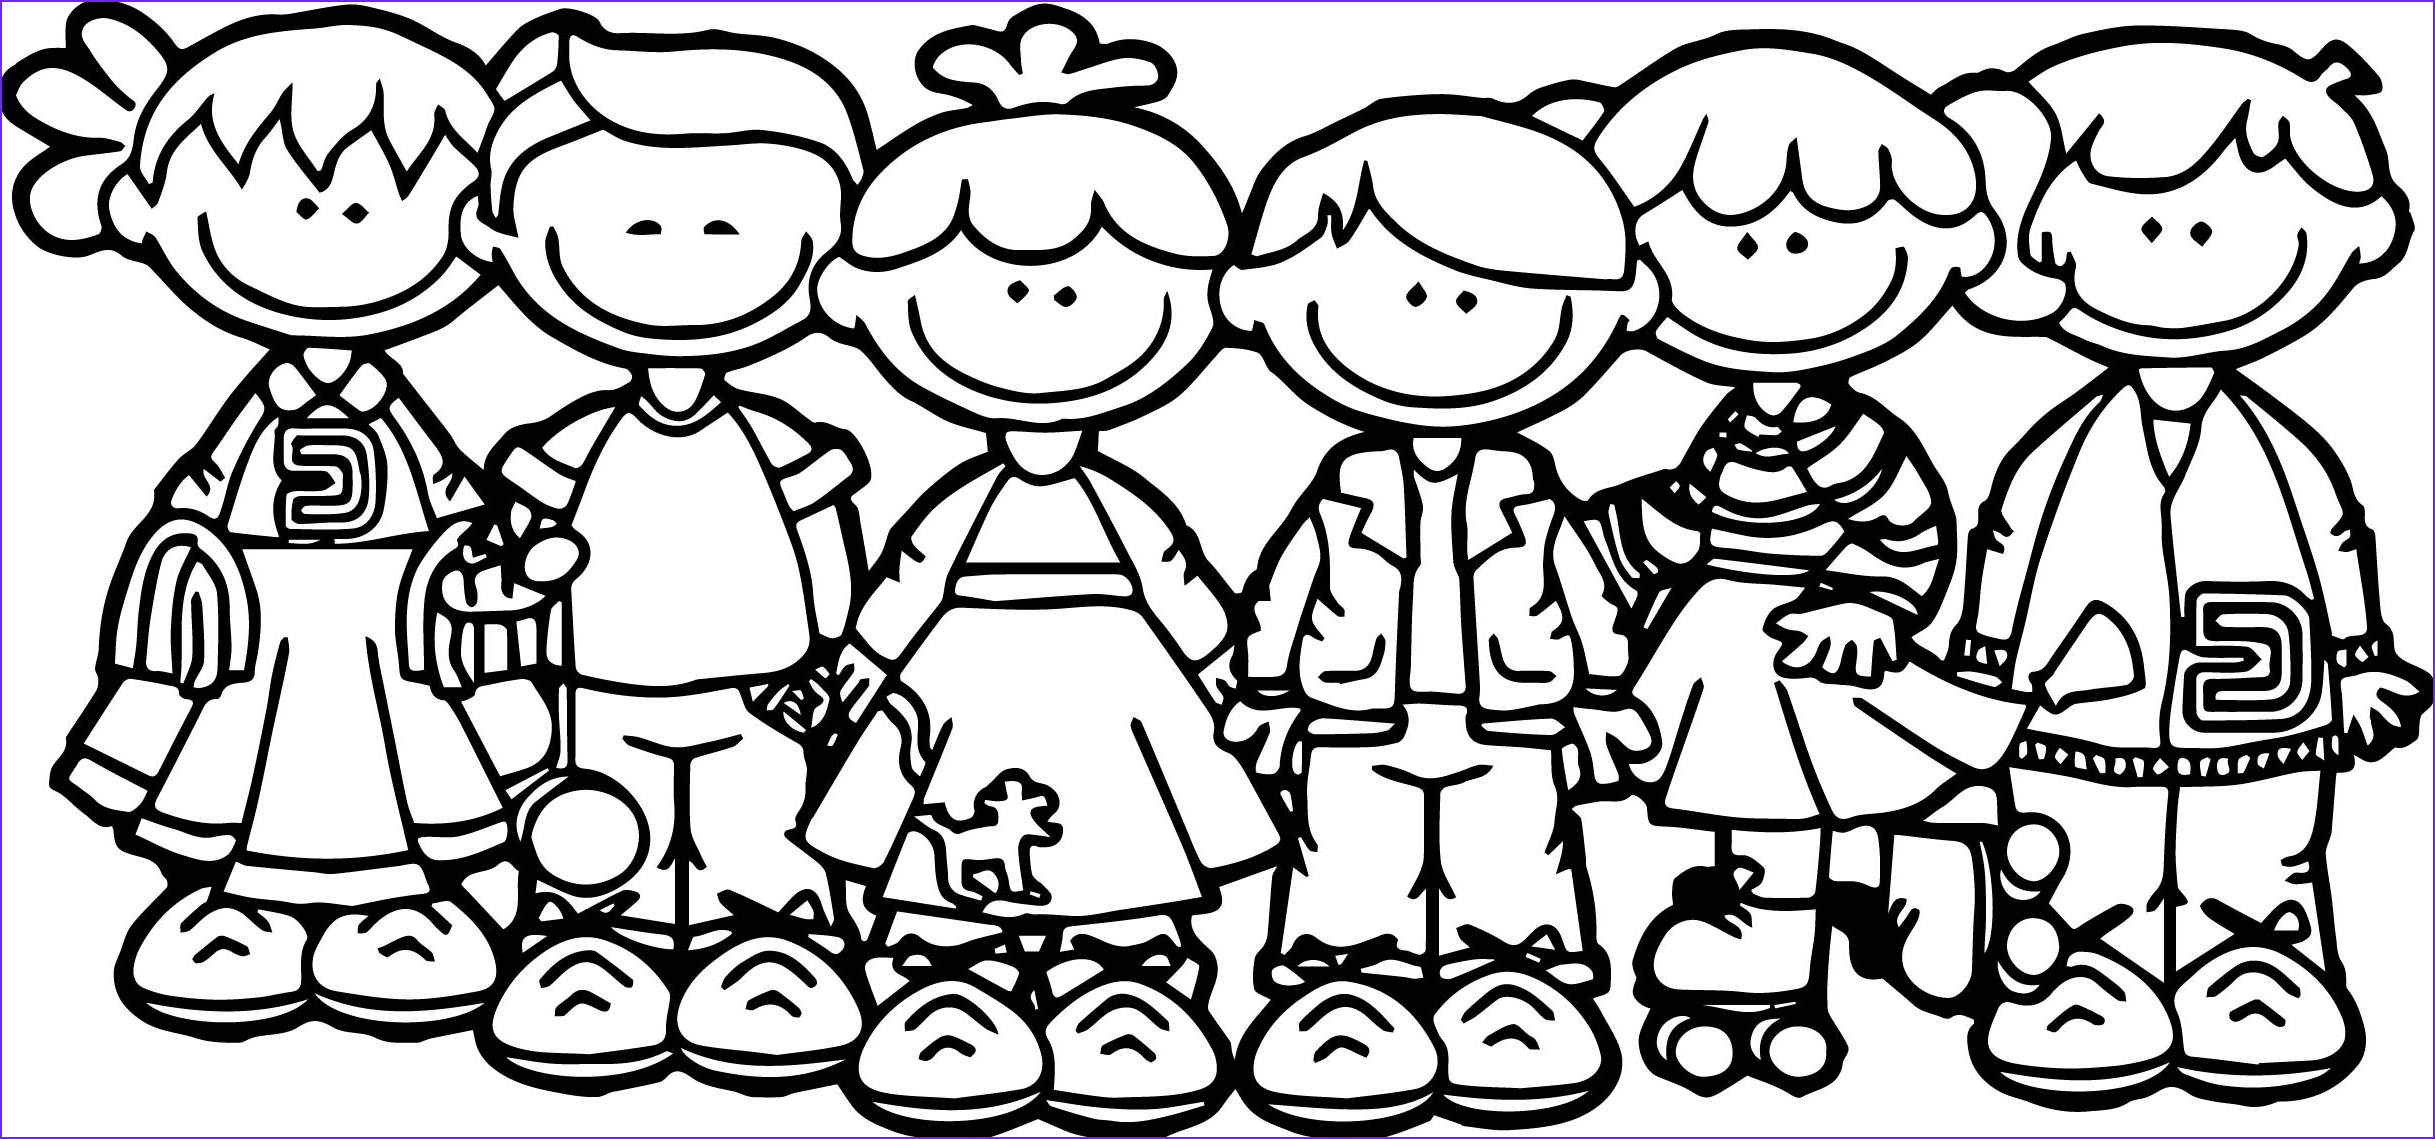 100 days school children coloring page